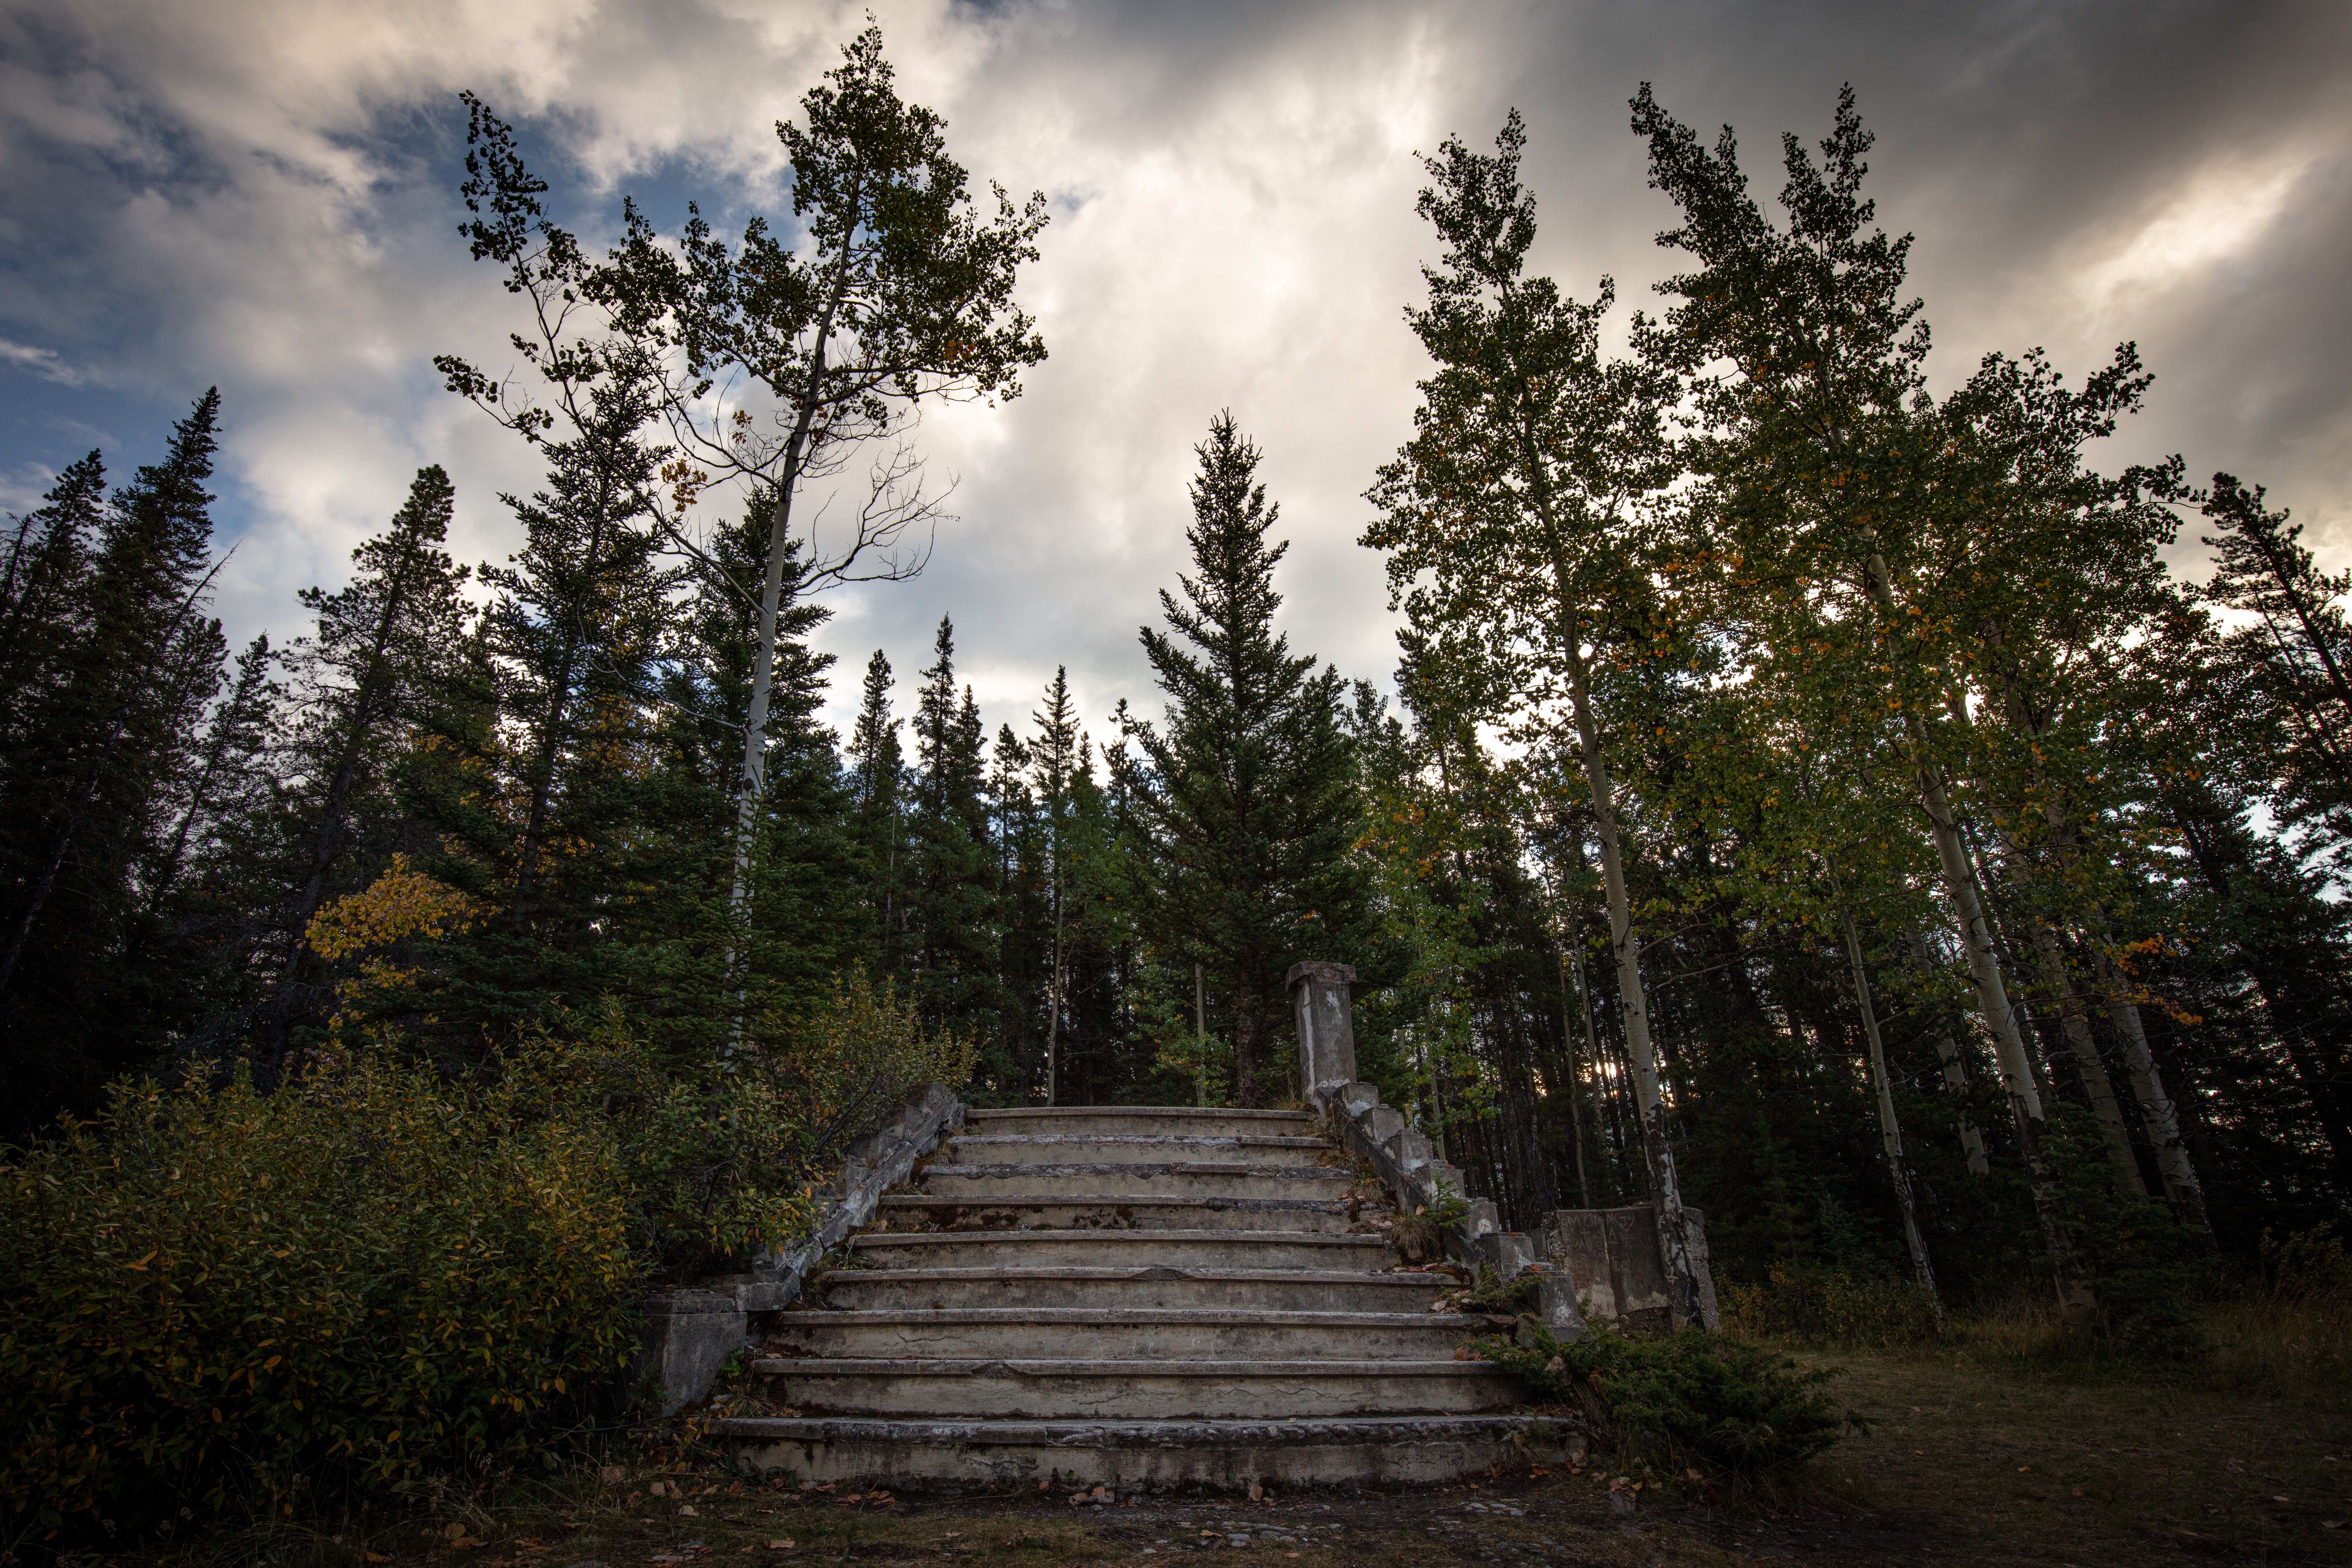 The stairs to the old Holy Trinity Church in Bankhead, Alberta, Canada before the church was cut in half in 1922 and taken to Calgary where it remained until 1962